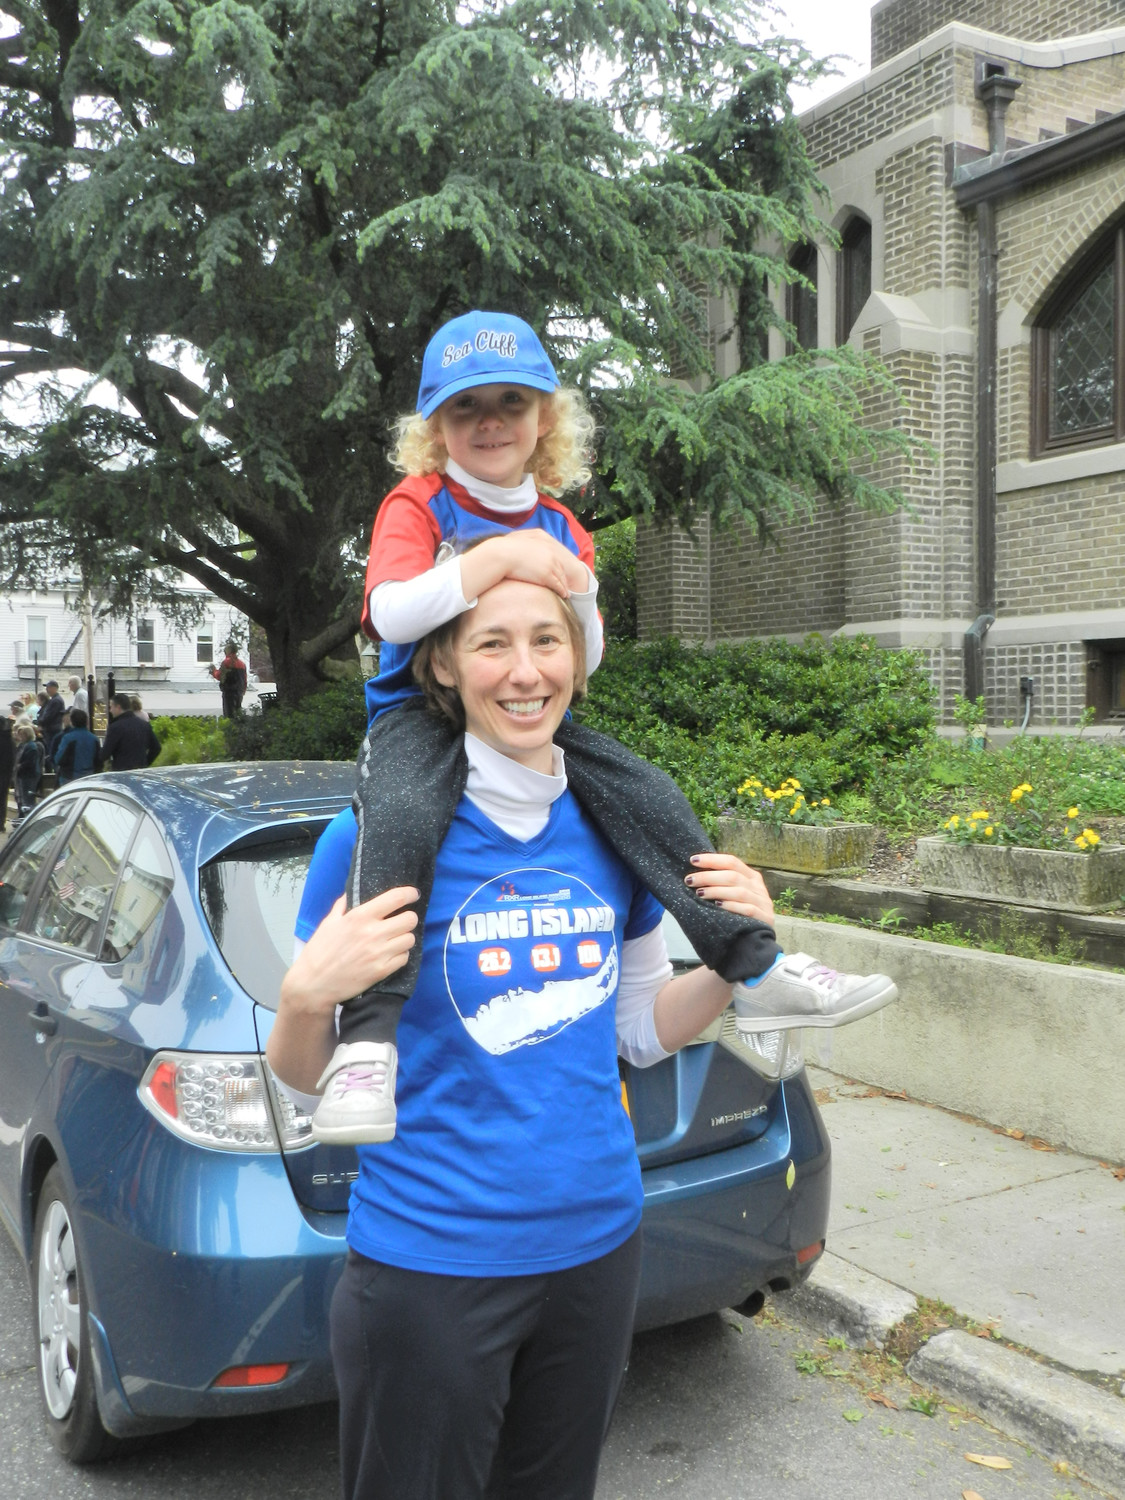 Resident Liz Baron gave her daughter Genevieve, 4, a boost so she could see among the crowds that gathered on Sea Cliff Avenue for the parade.